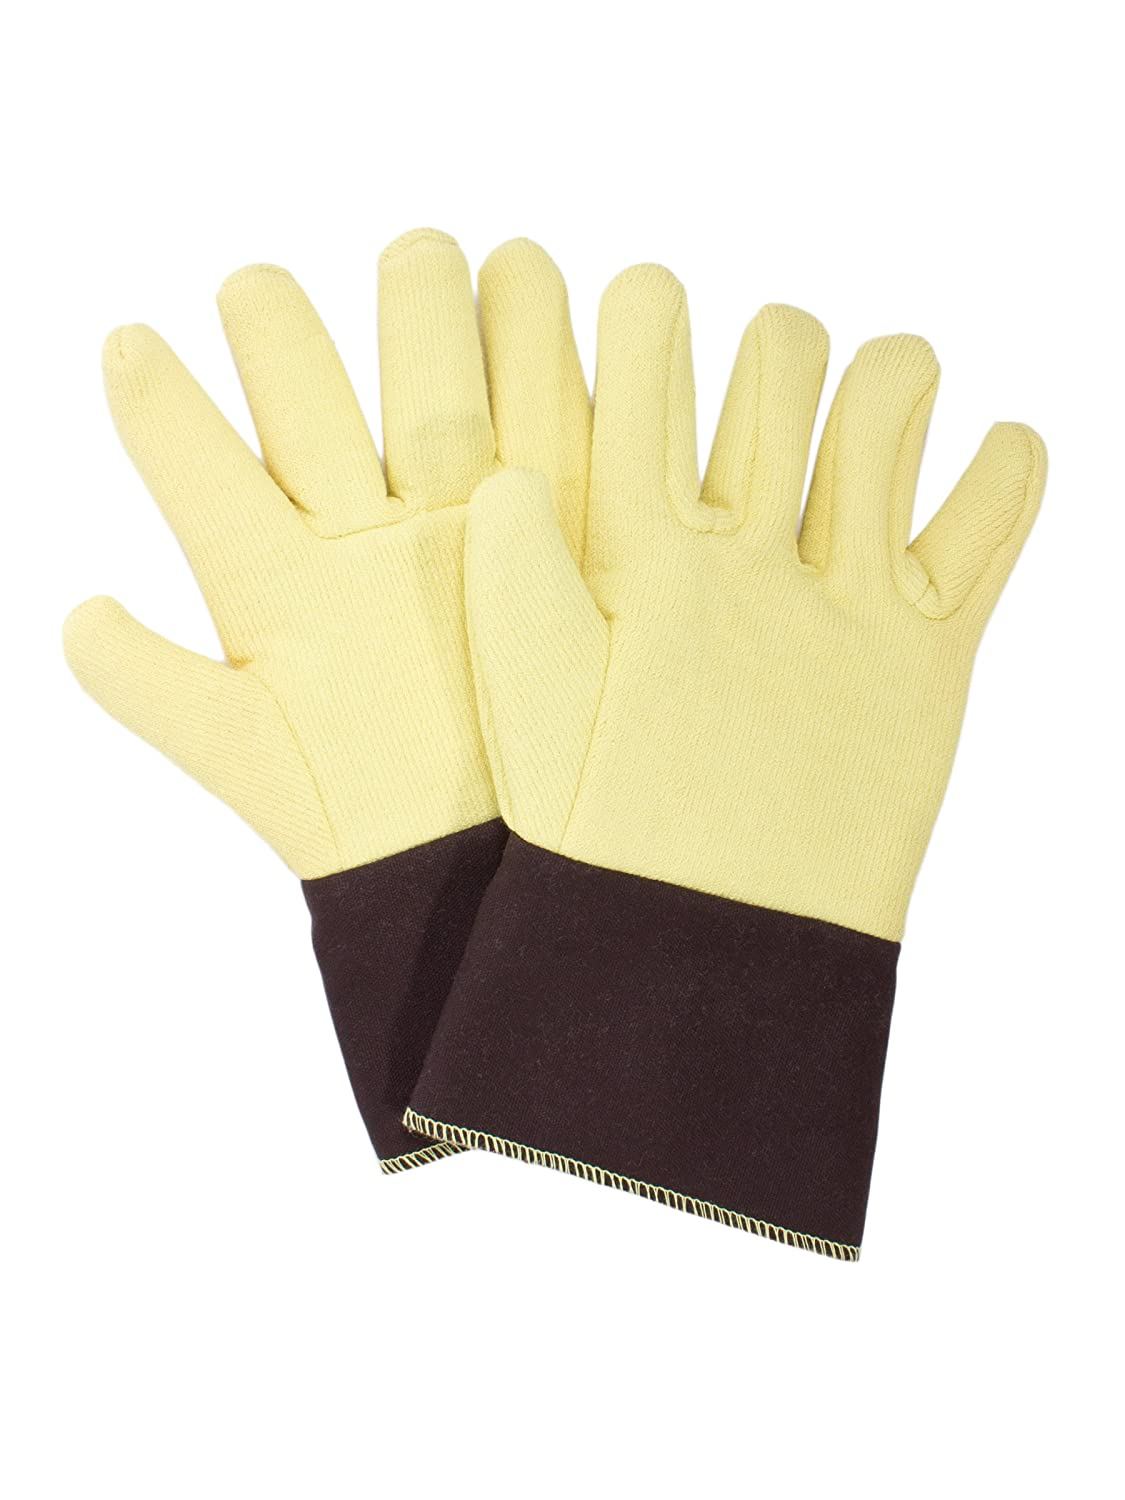 National Safety Apparel G43RTRF01012 Reversed Kevlar Terry Glove with FR Duck Cuff, Large, Yellow by National Safety Apparel Inc